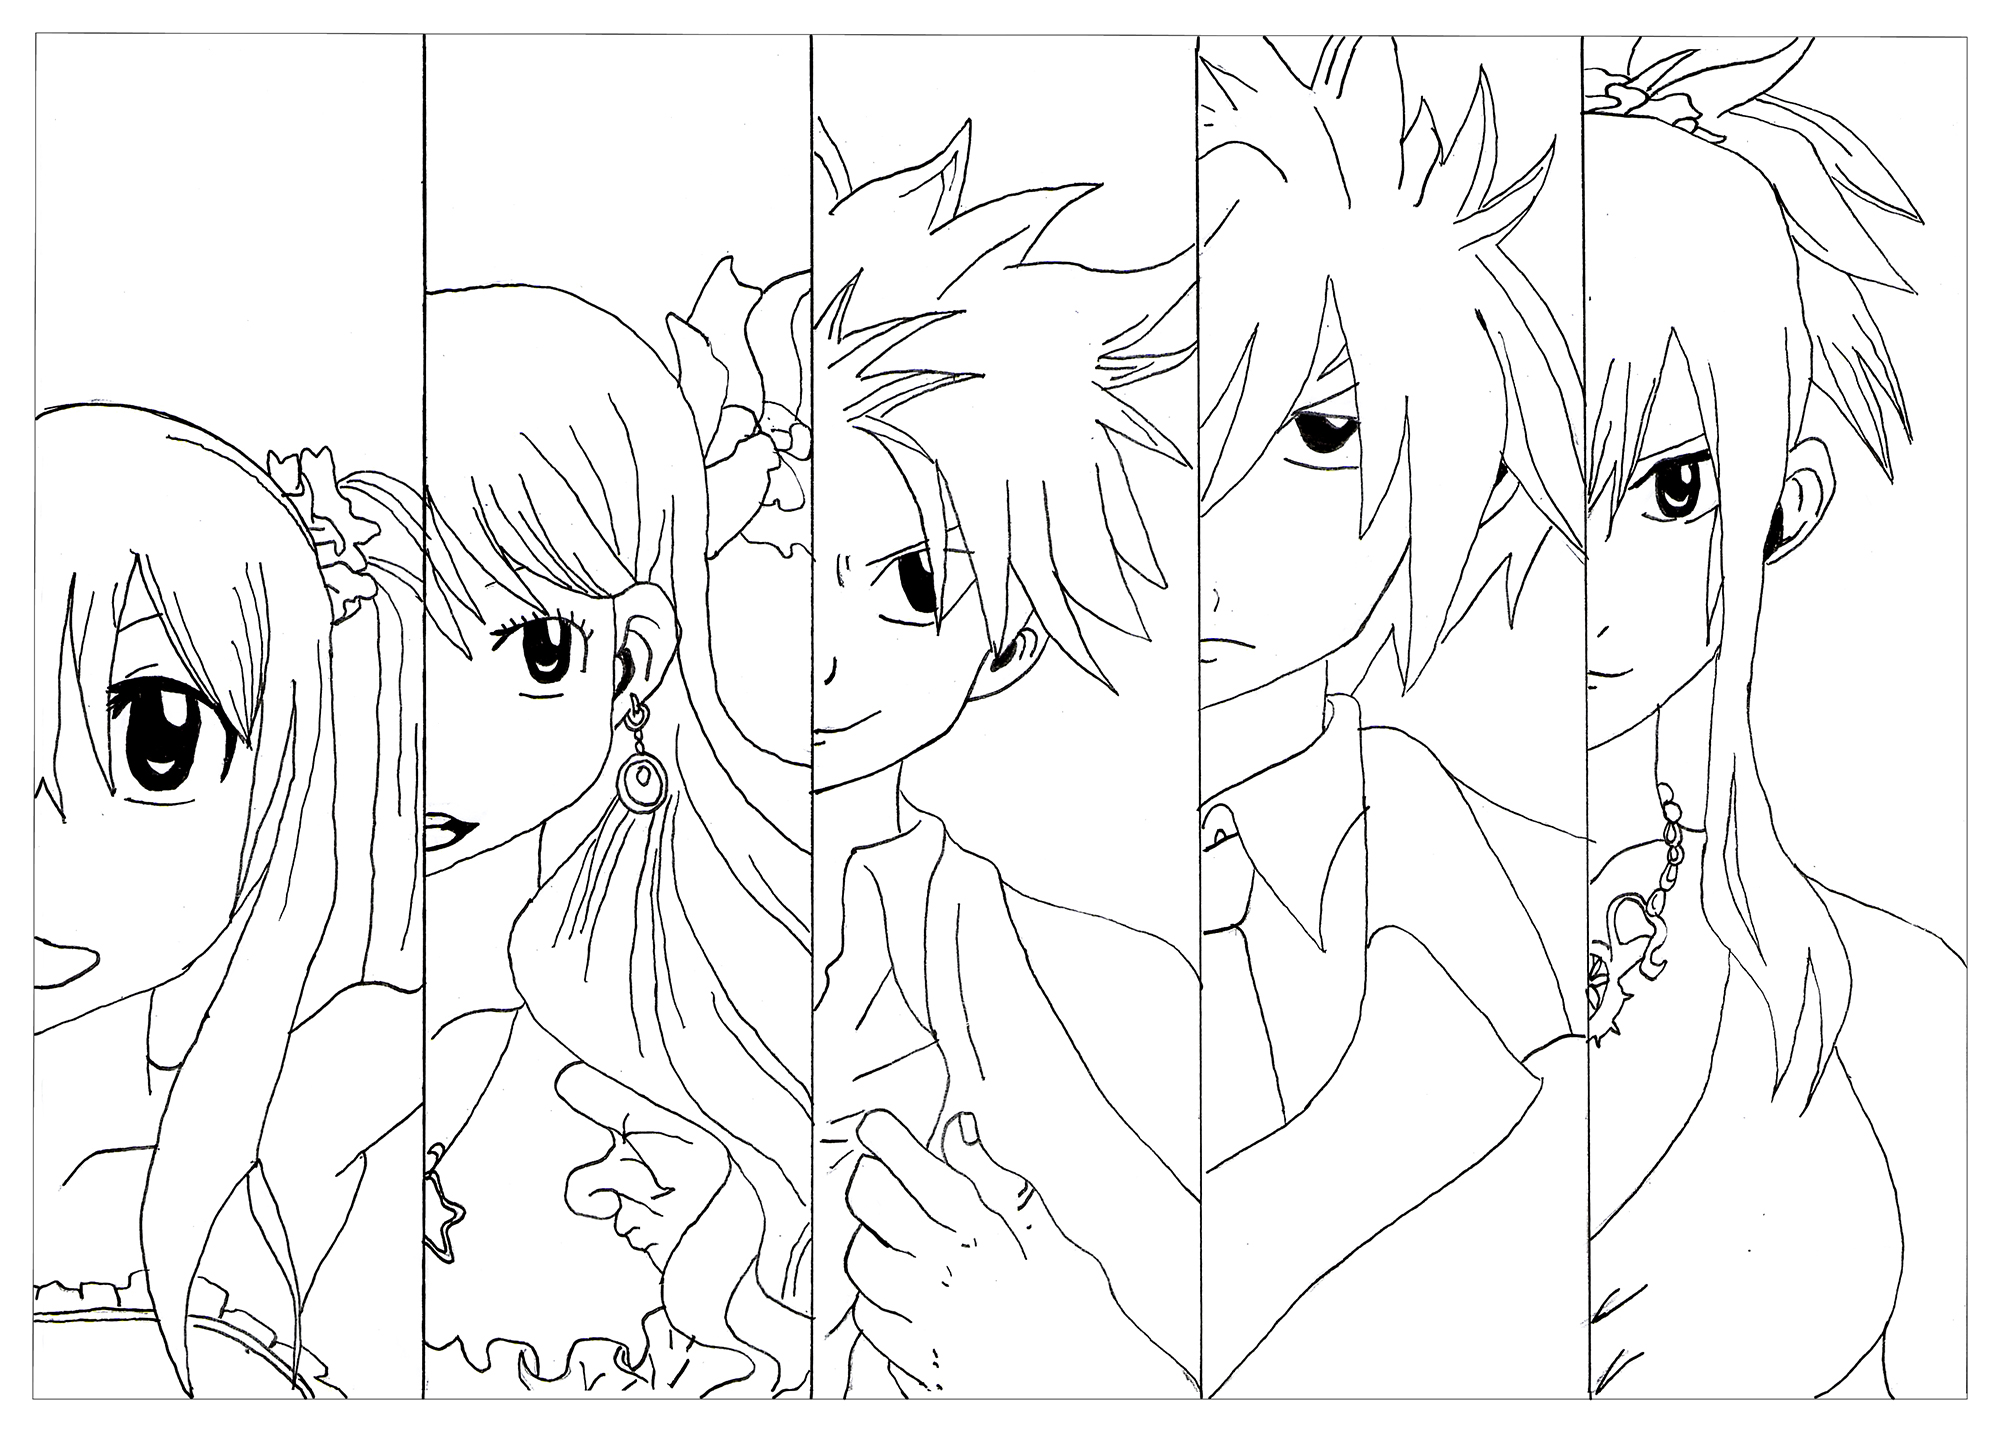 Manga fairy tail krissy mangas anim s coloriages difficiles pour adultes - Fairy tail coloriage ...